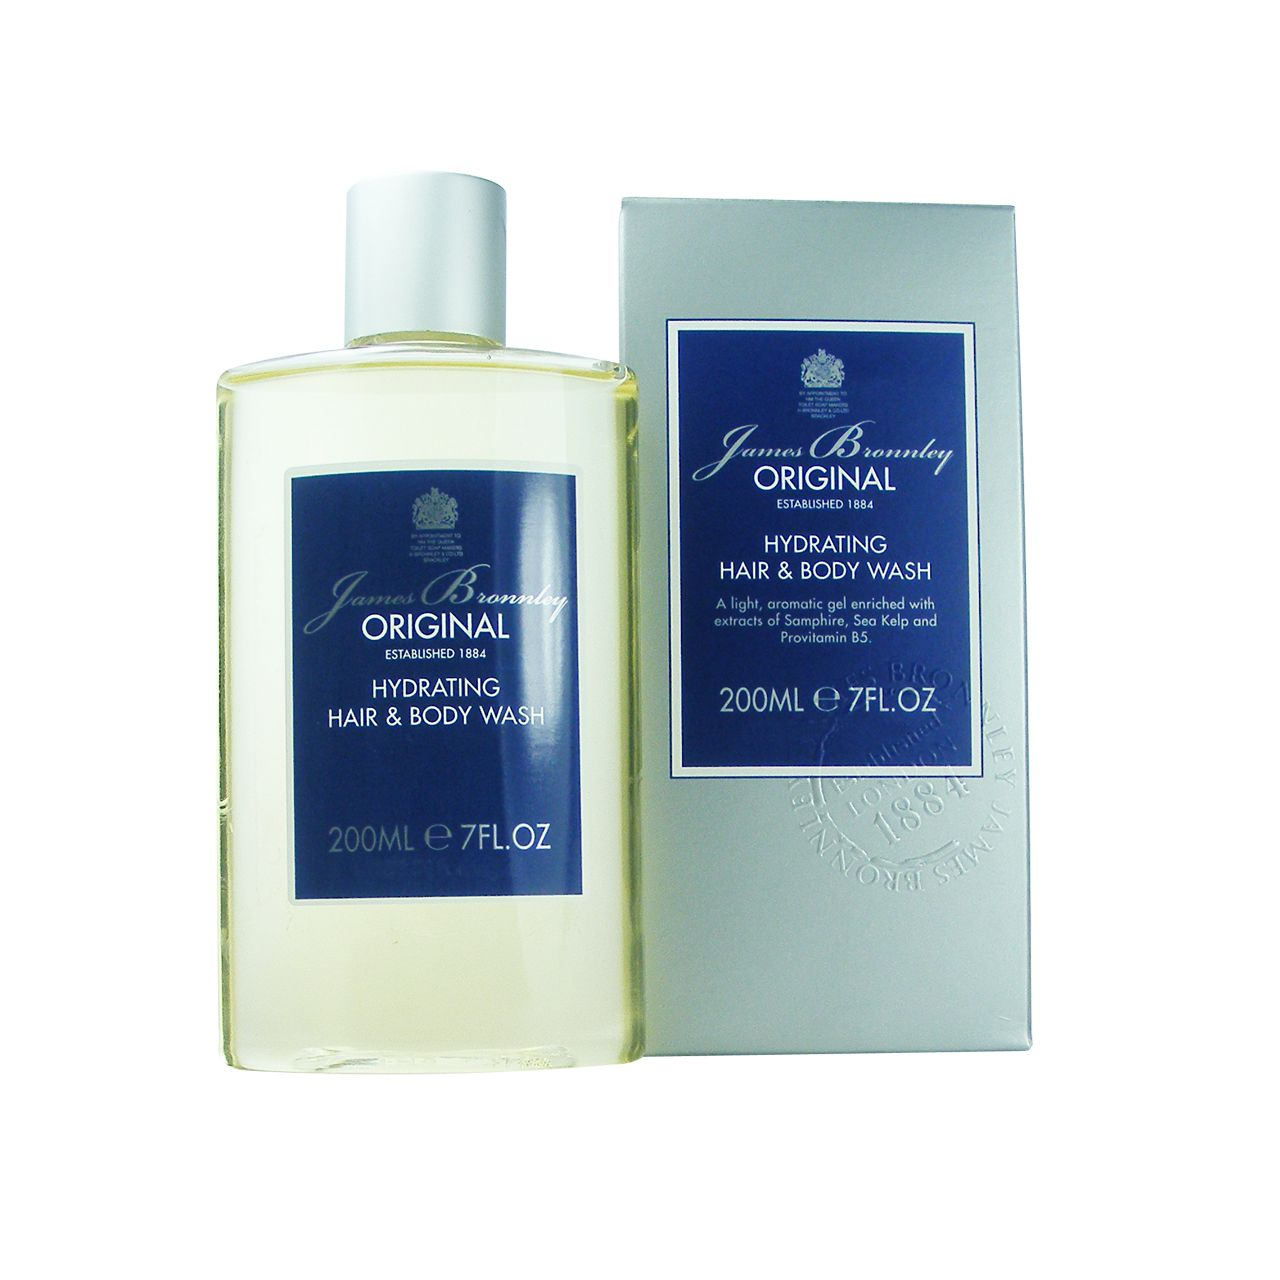 James Bronnley 200ml Body Wash